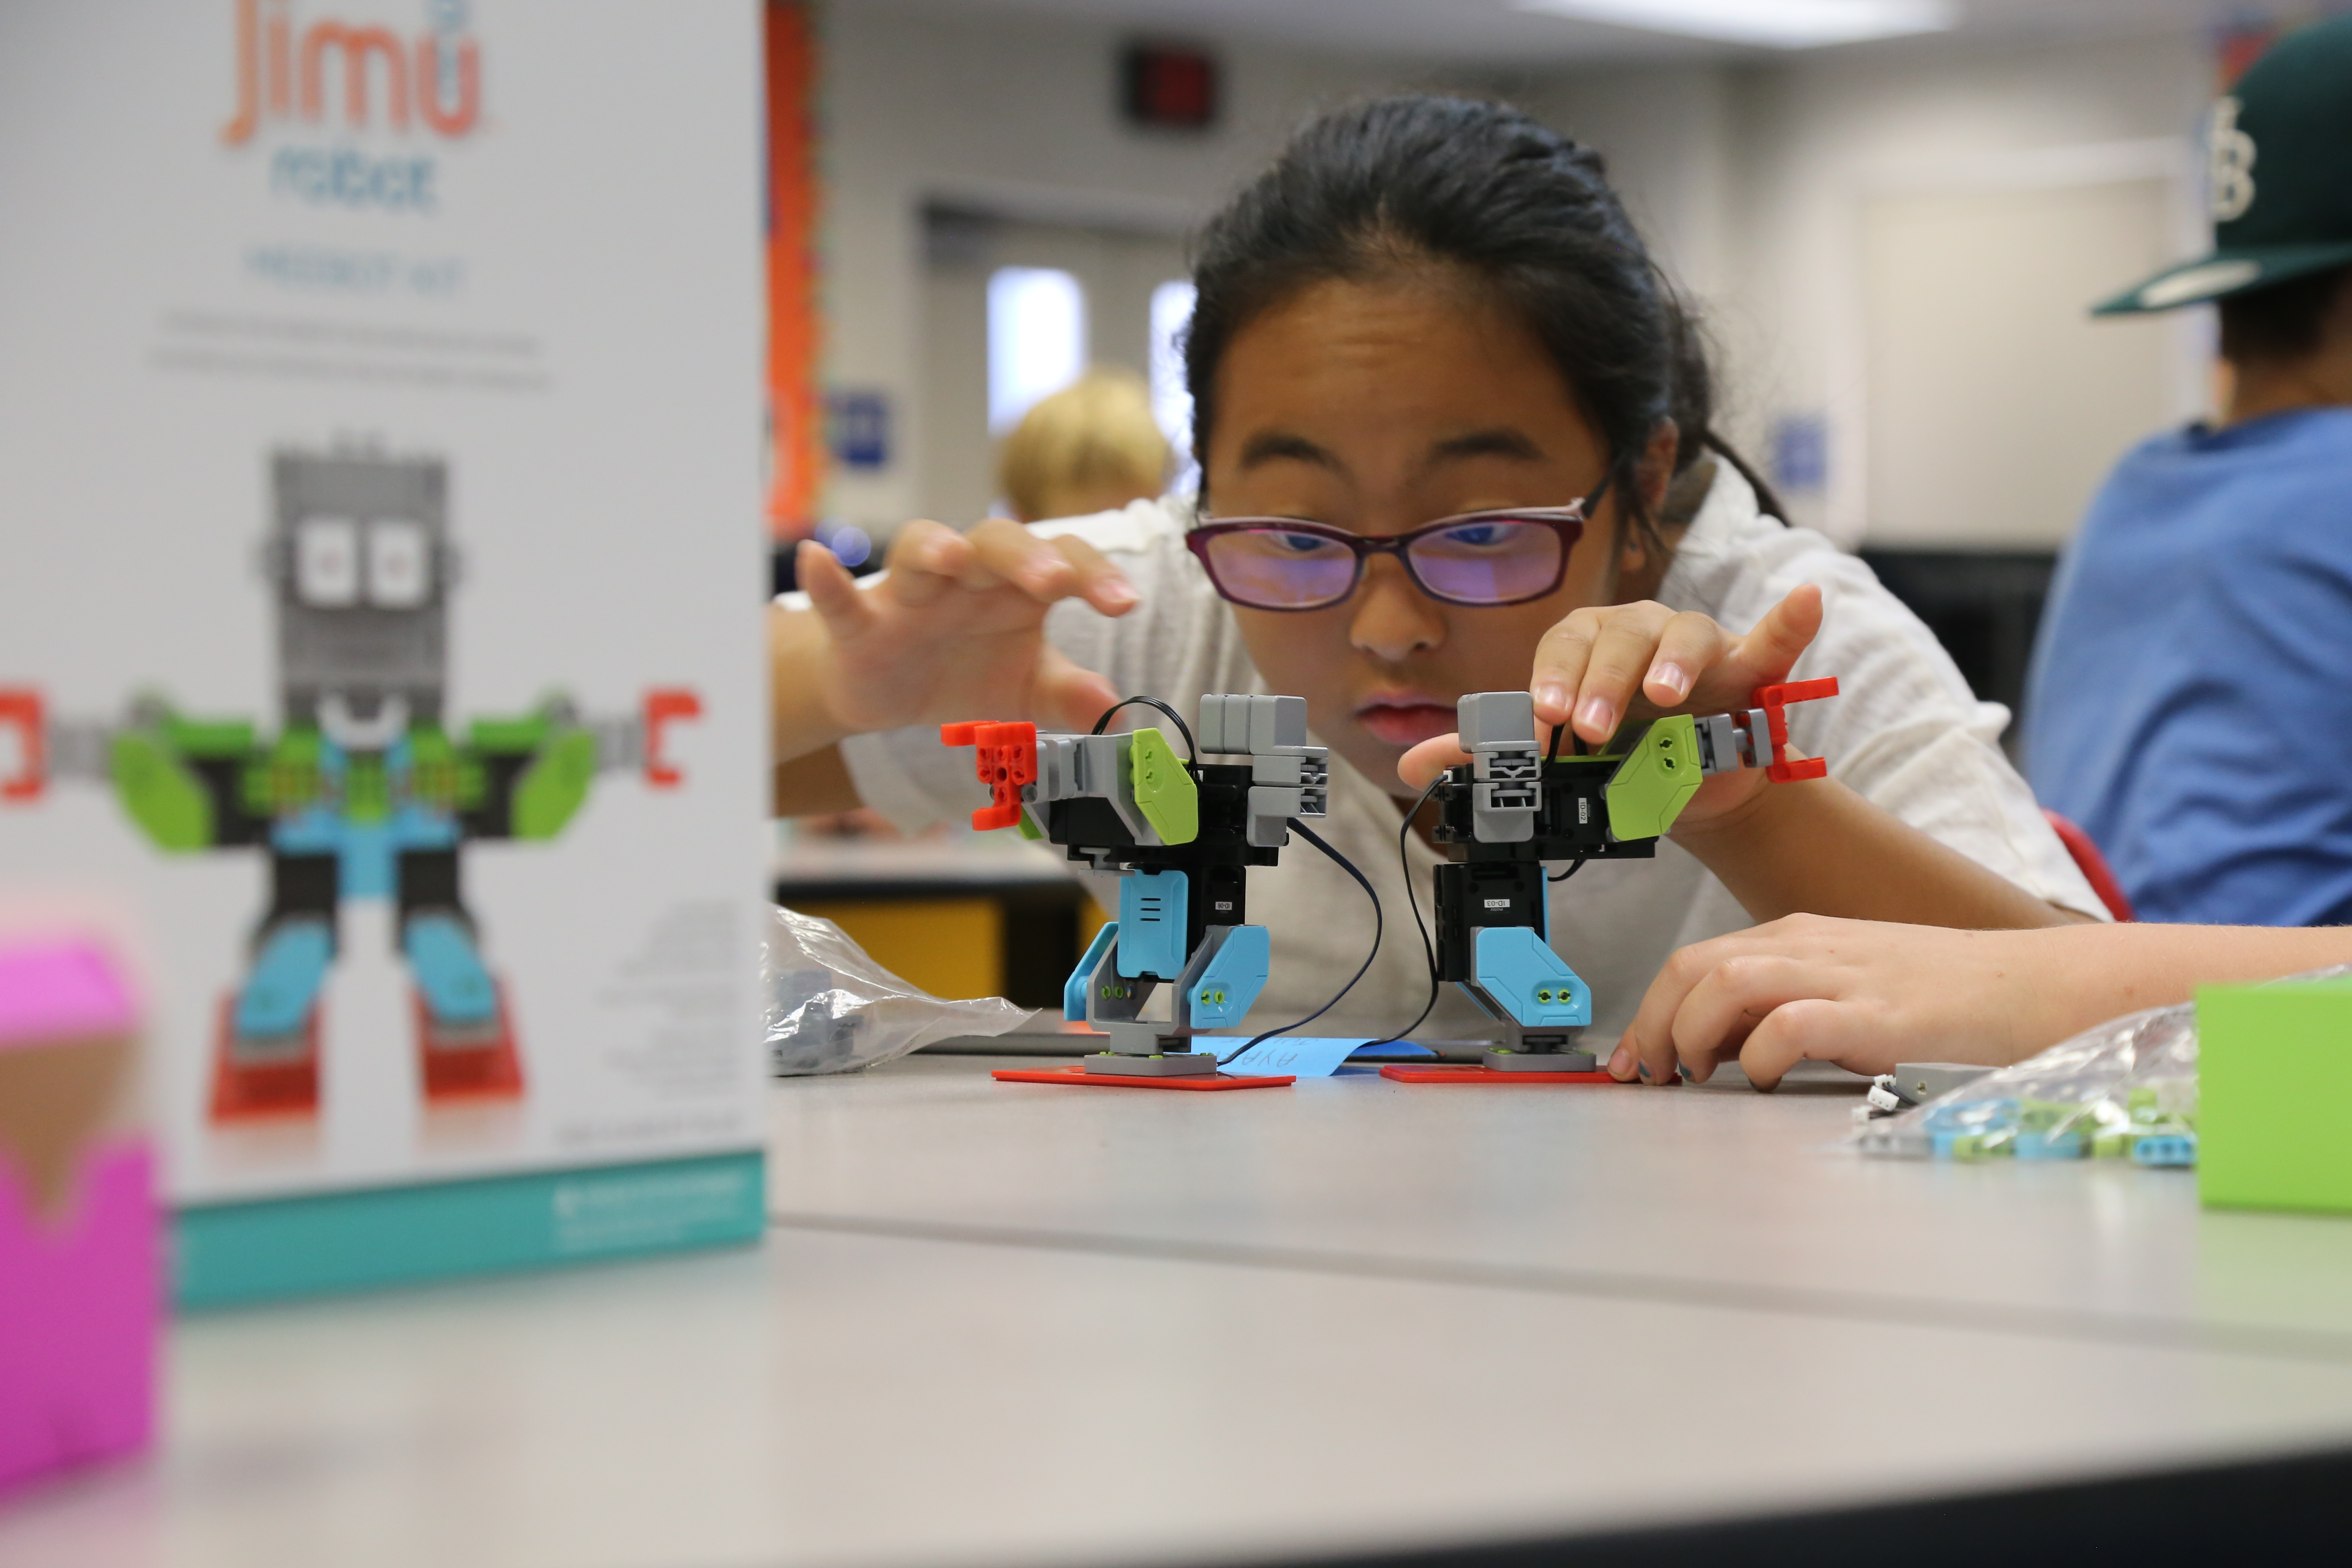 Ubtech Robots Make Stem Learning Fun In The Classroom Business Wire Alpha 1s Humanoid Robot